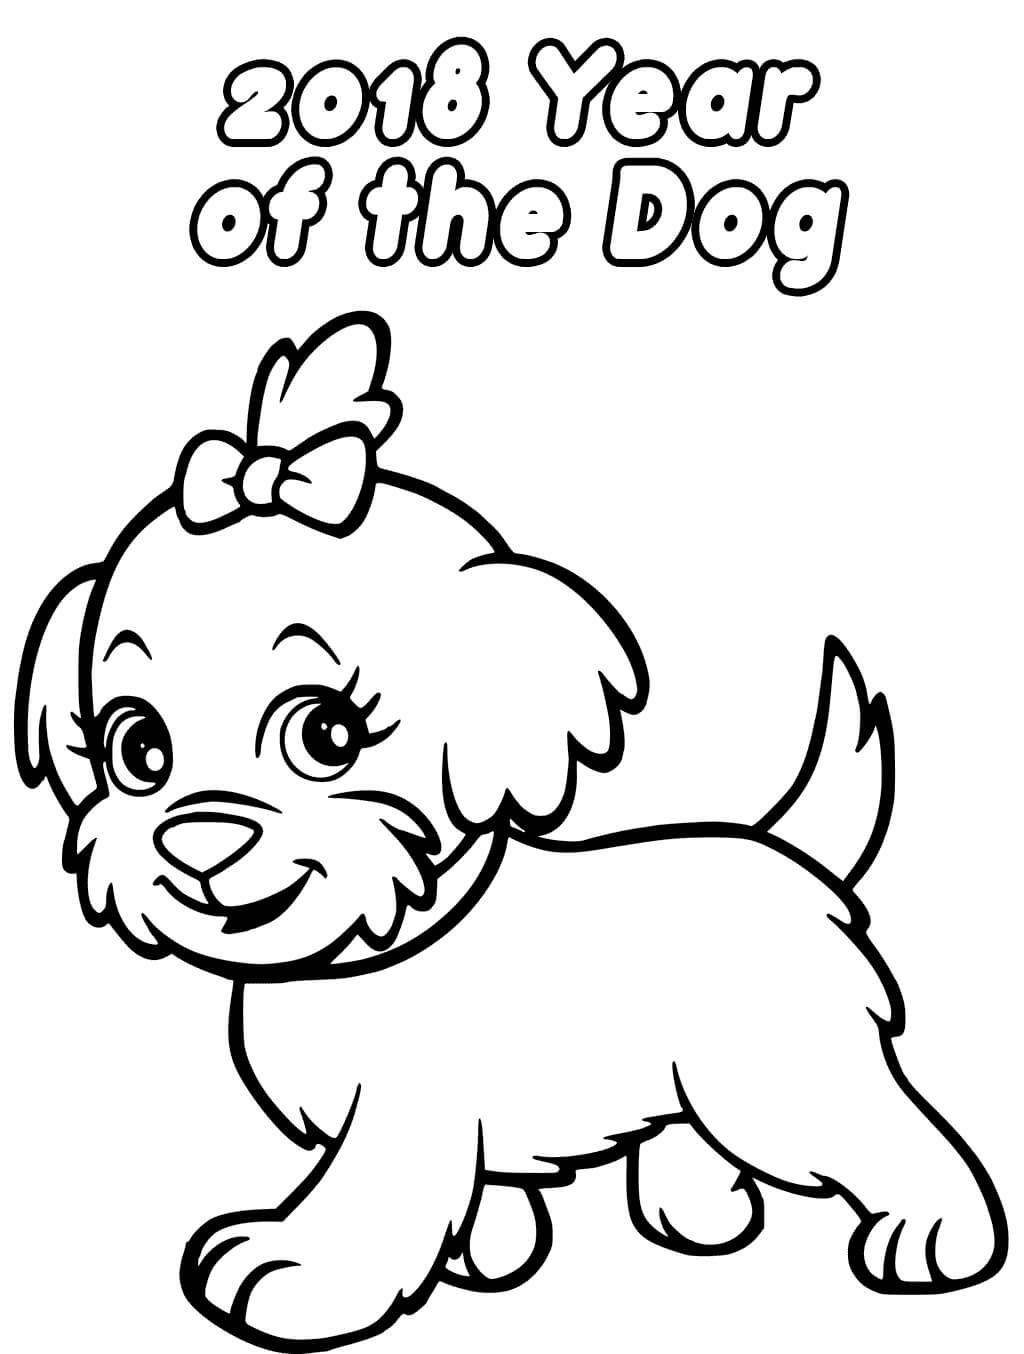 Chinese Year Of The Dog 2018 Coloring Page Puppy Coloring Pages